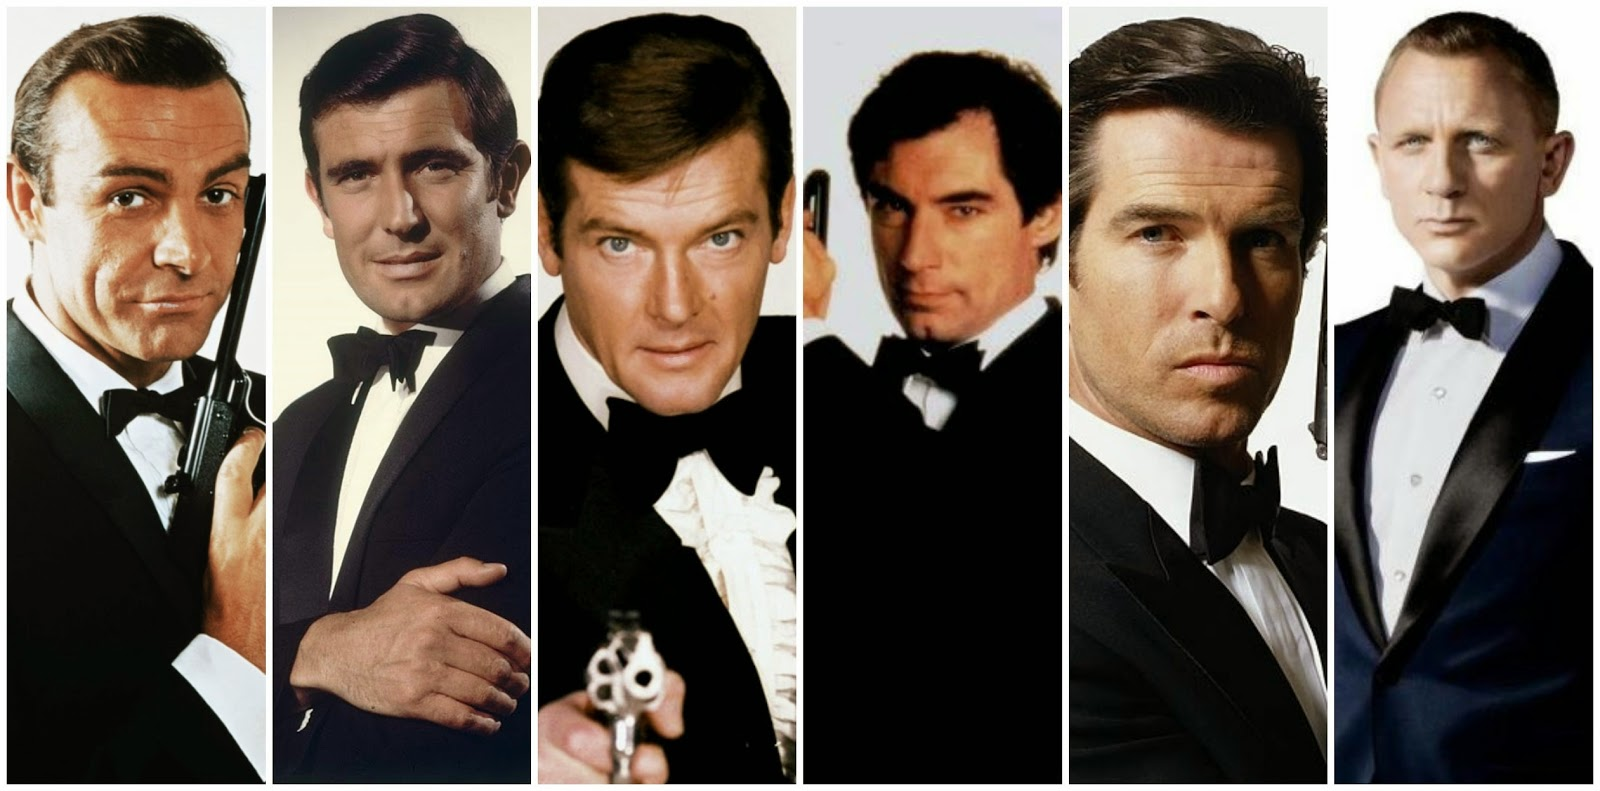 james_bond_collage.jpg